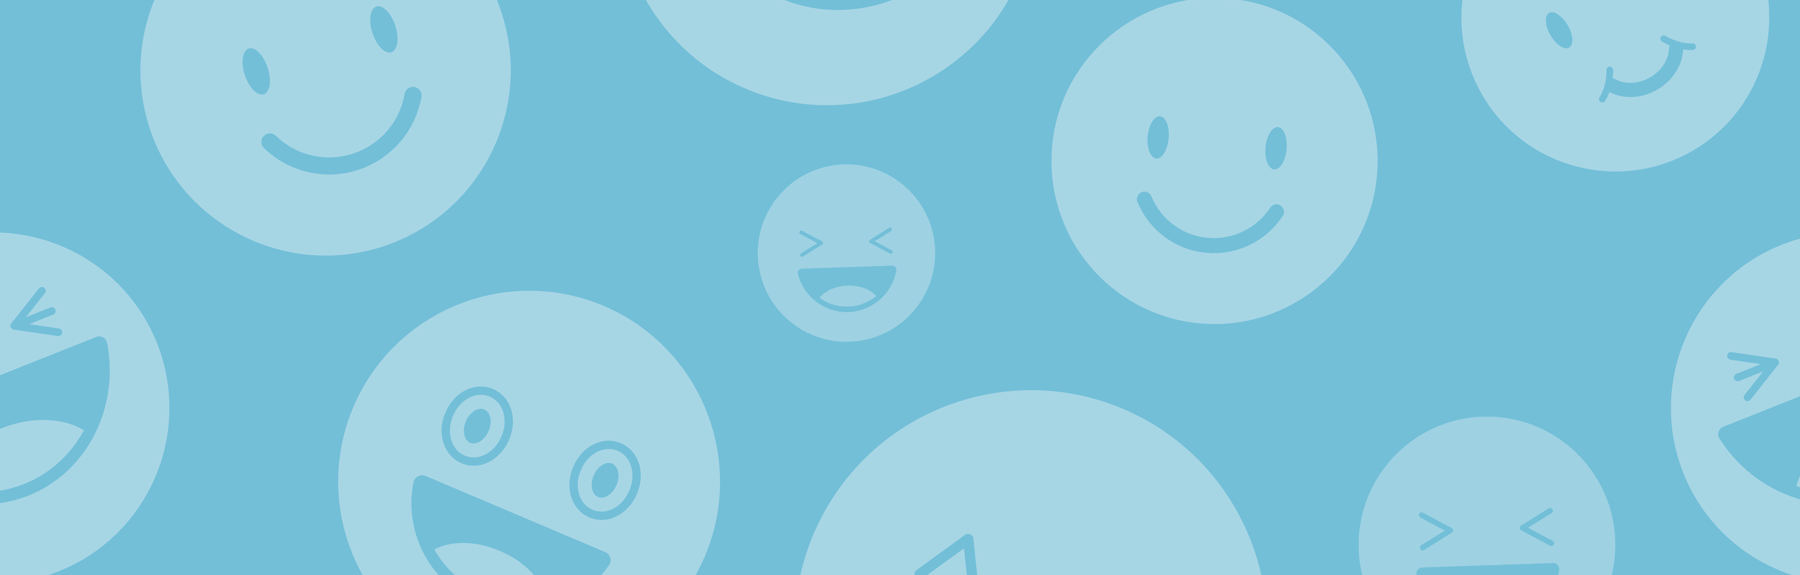 emoji-user-experience-design-header